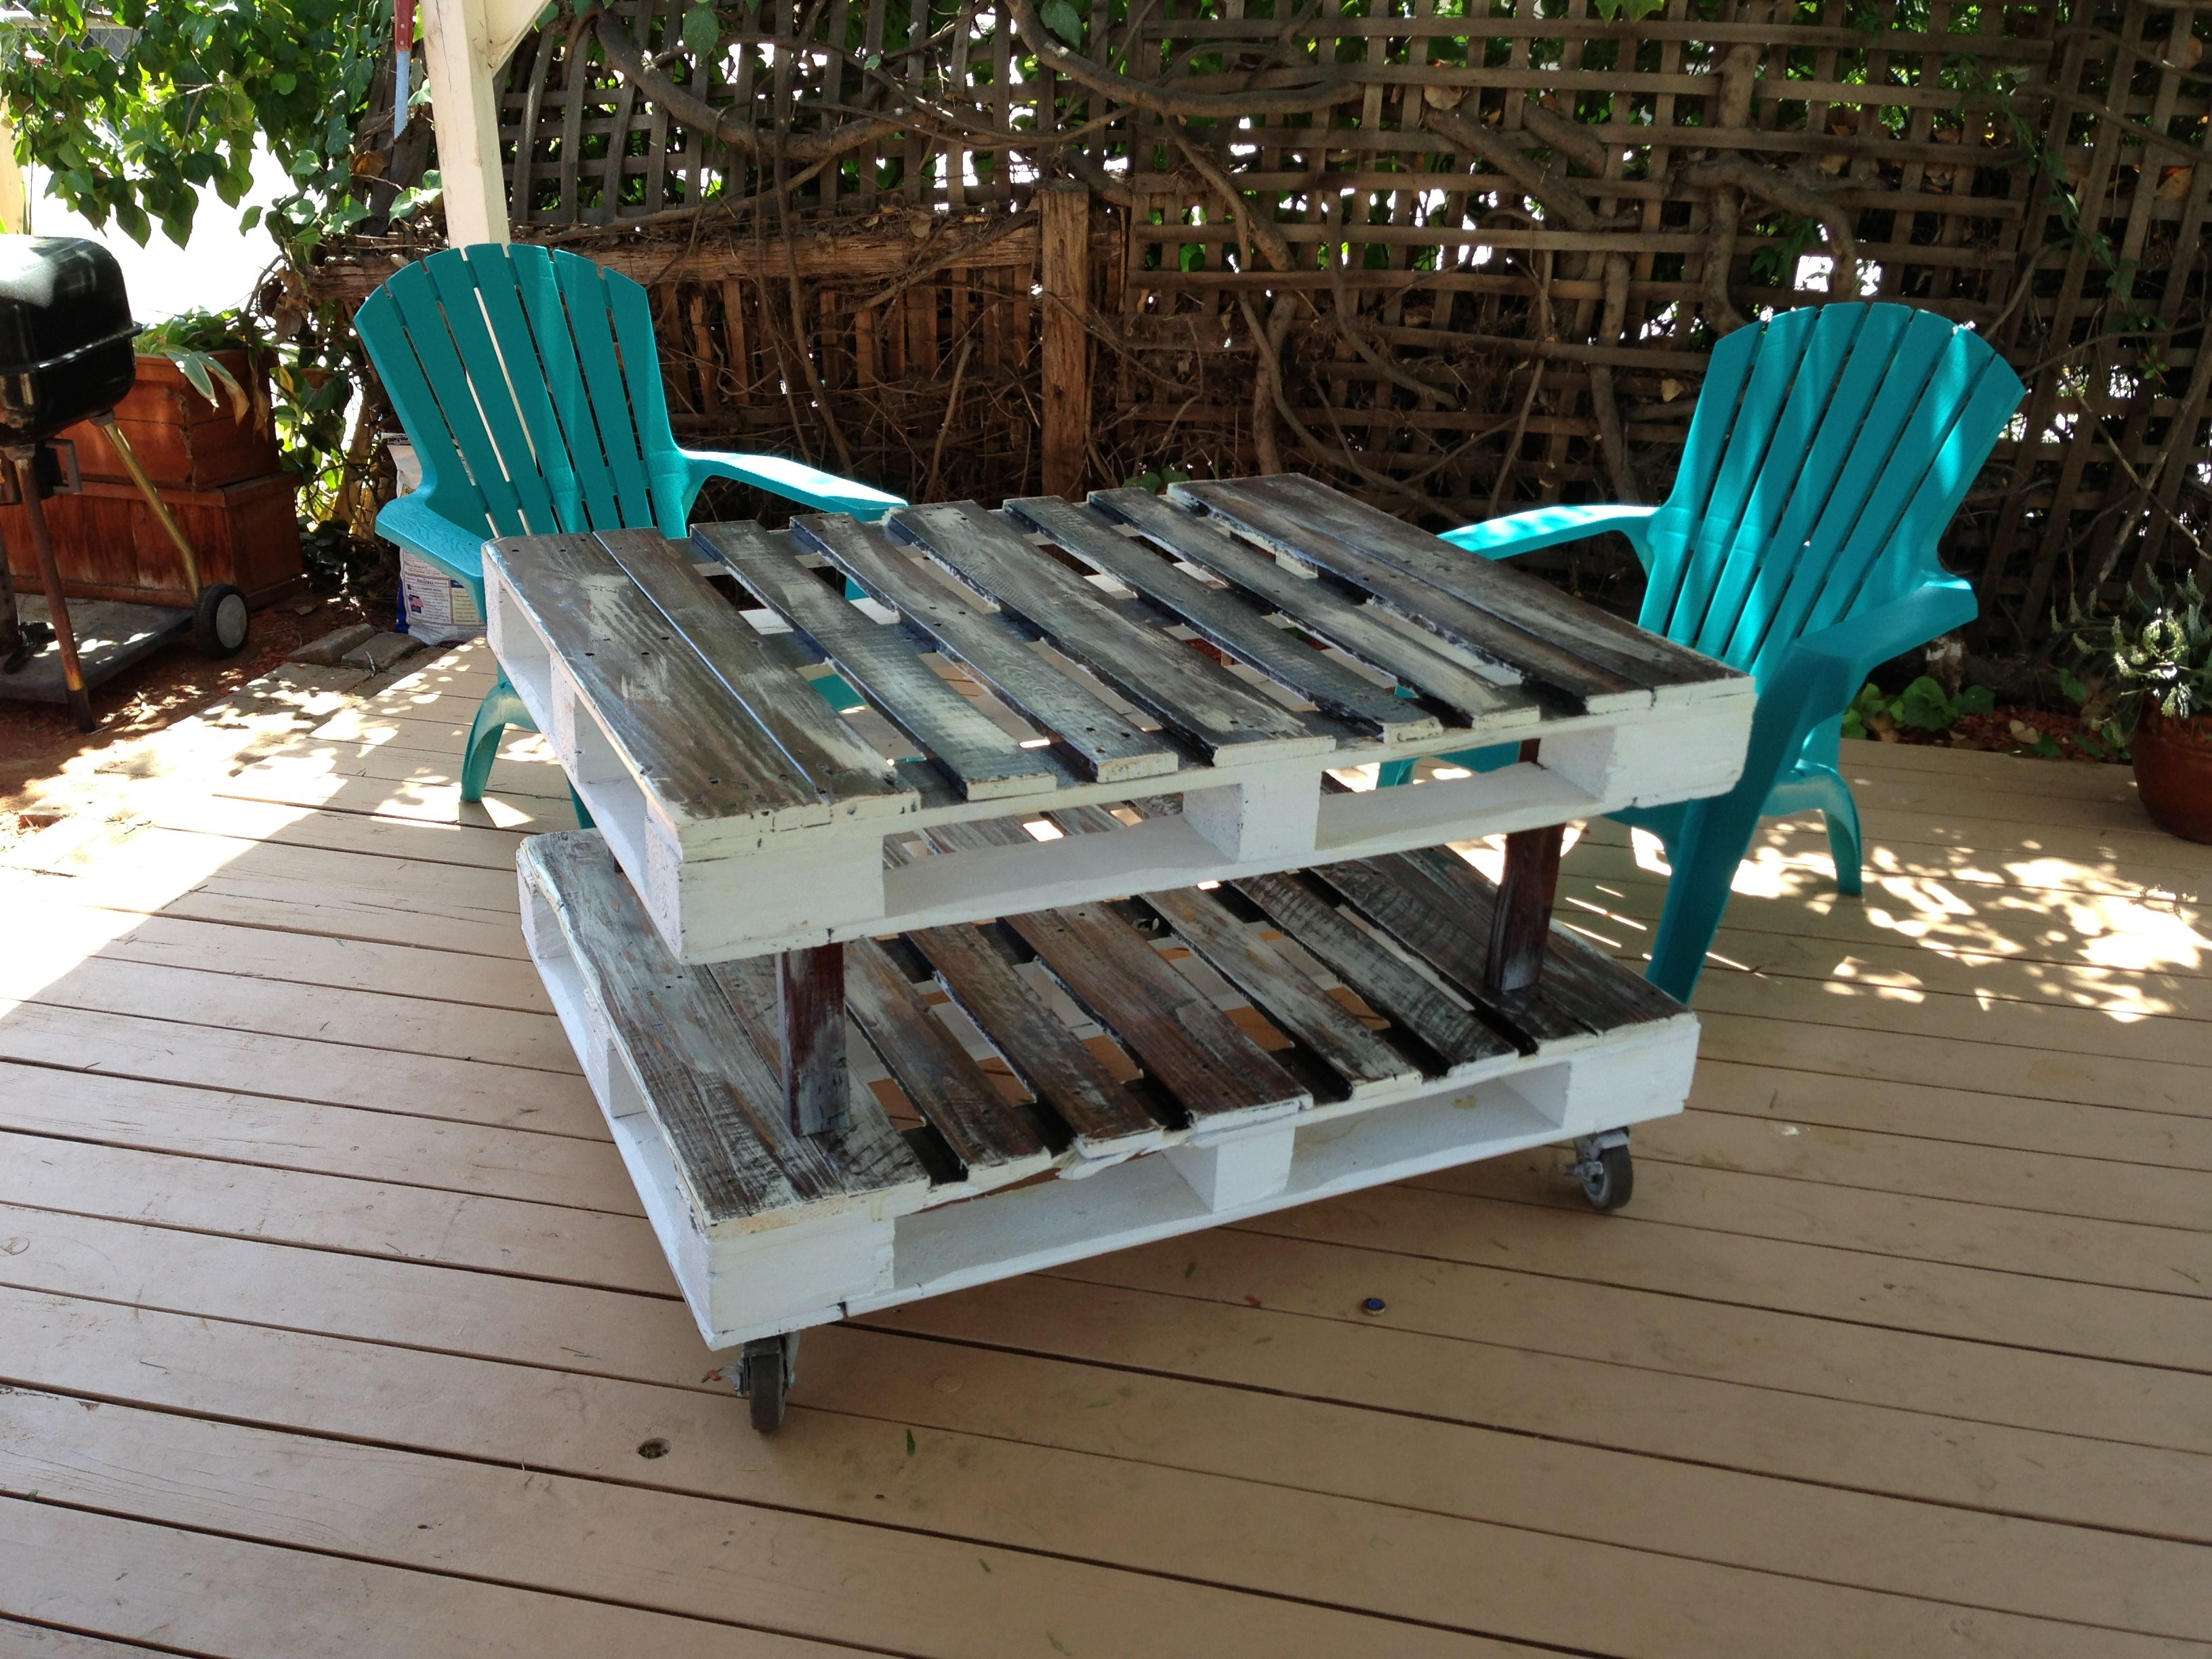 Recycled patio furniture Upcycle ideas